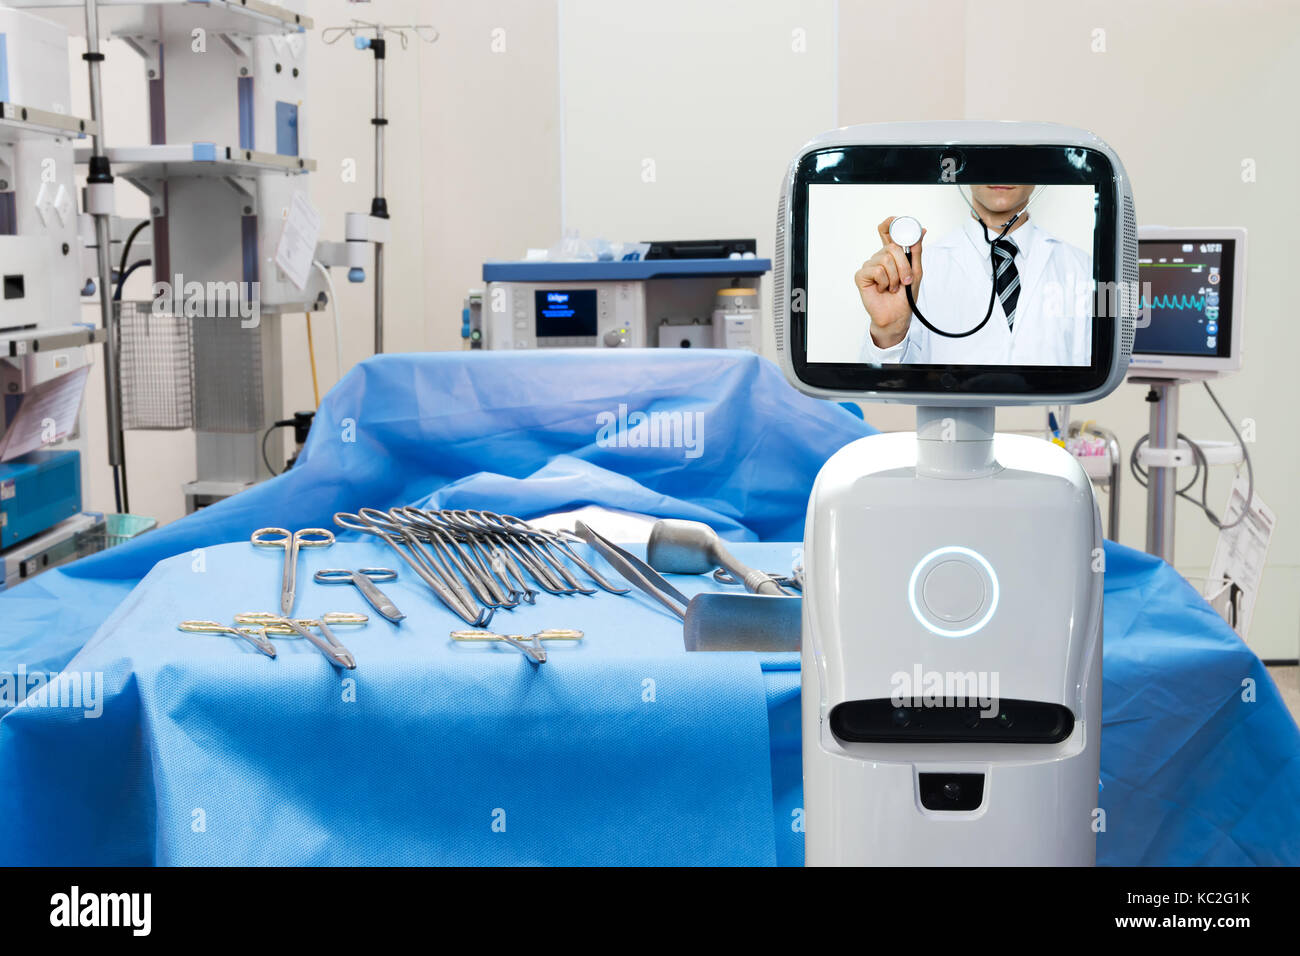 Robotic Advisor Service Technology In Healthcare Smart Hospital Artificial Intelligence Concept Operating Room And Service Robot Display Telemonito